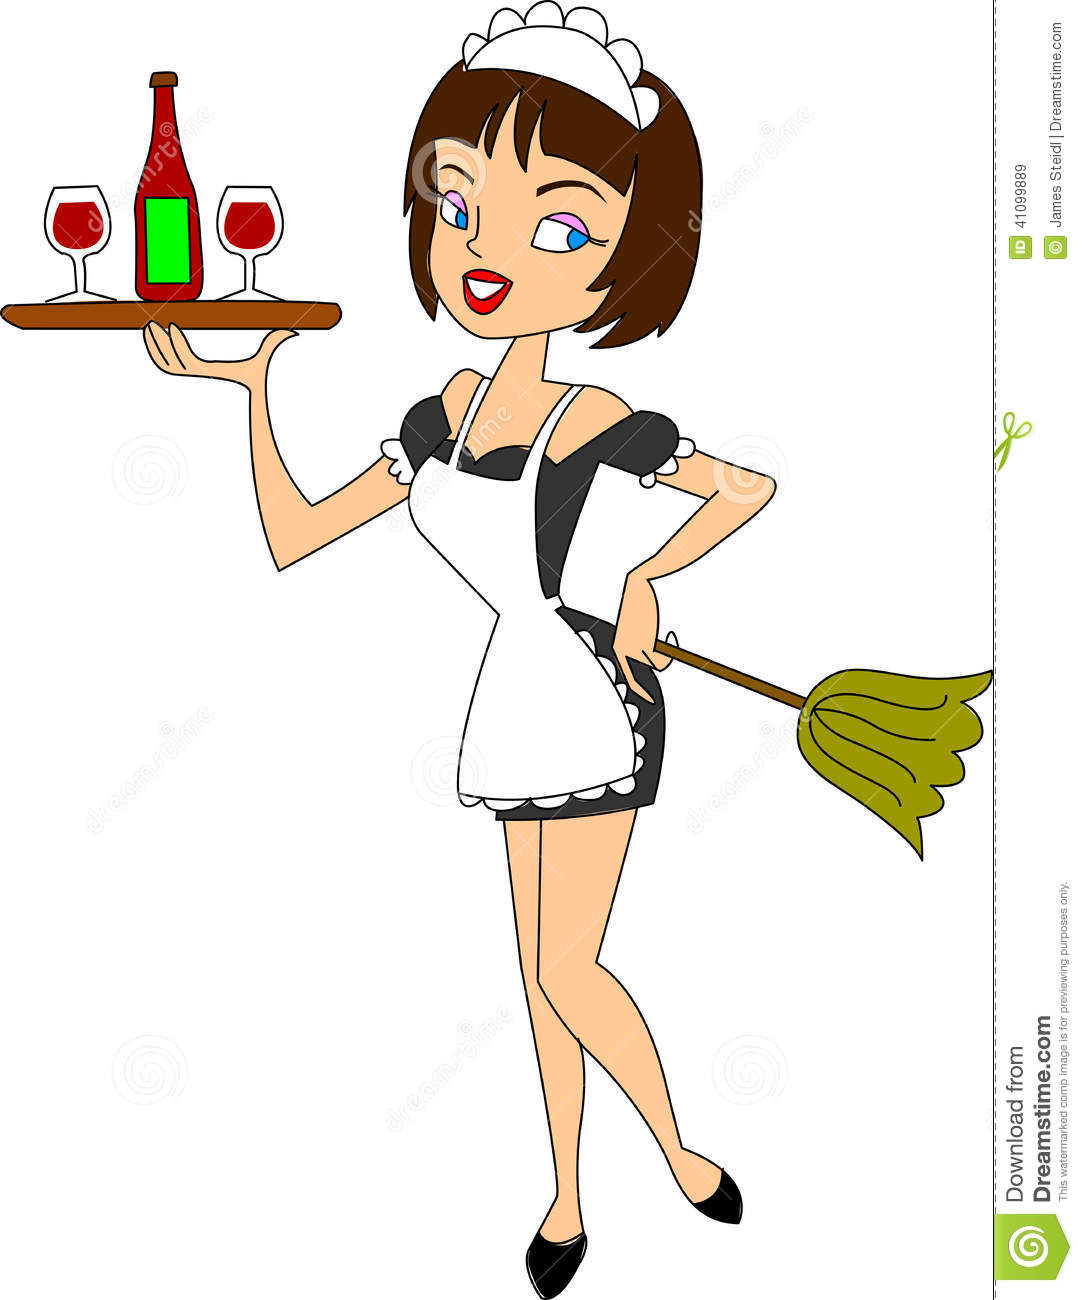 395 Maid free clipart.